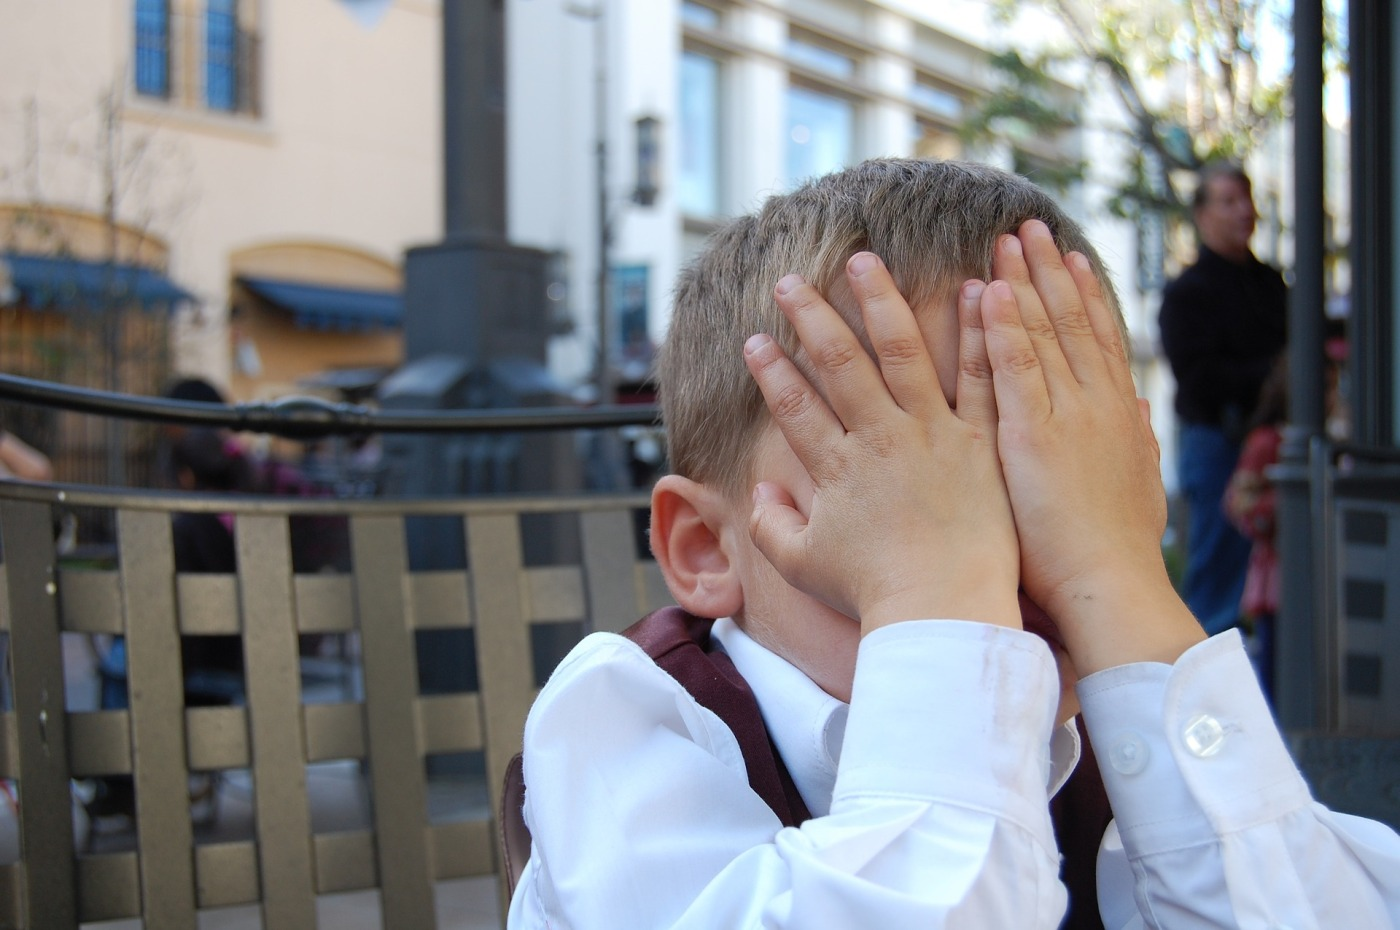 boy hiding face in hands facepalm | the lonely tribalist